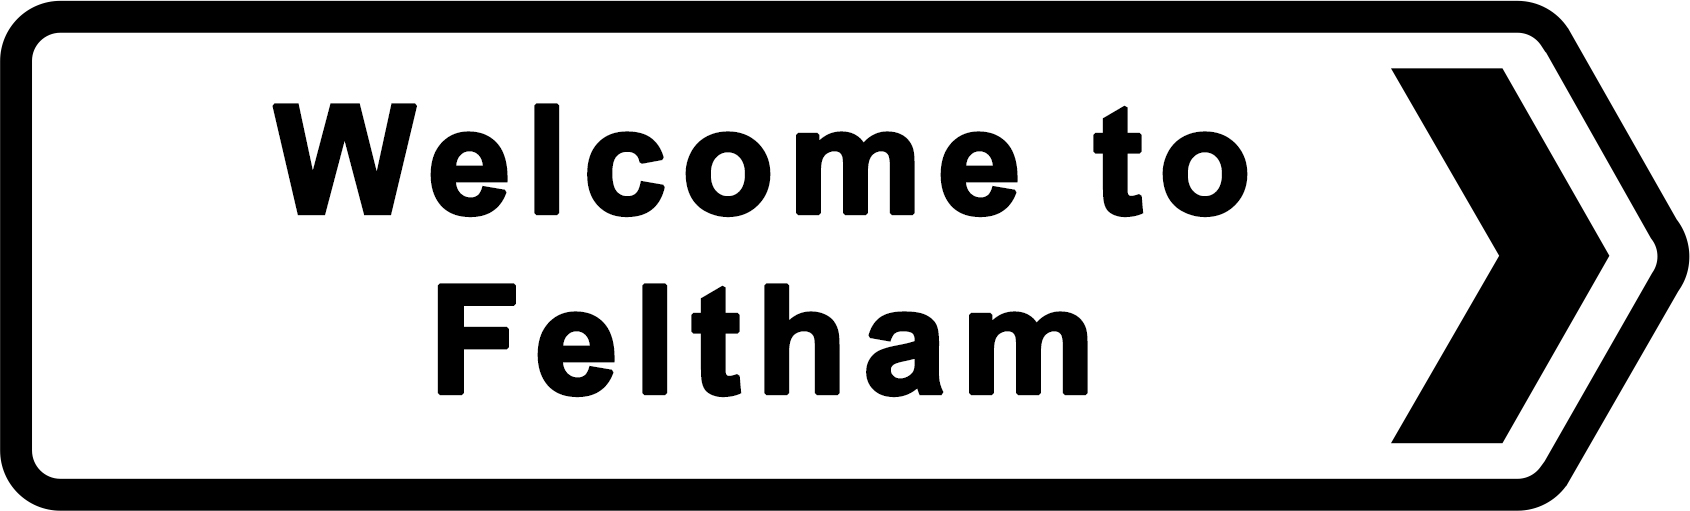 Feltham town centre - Cheap Driving Schools Lessons in Feltham, TW13/TW14, London Borough of Hounslow, Greater London